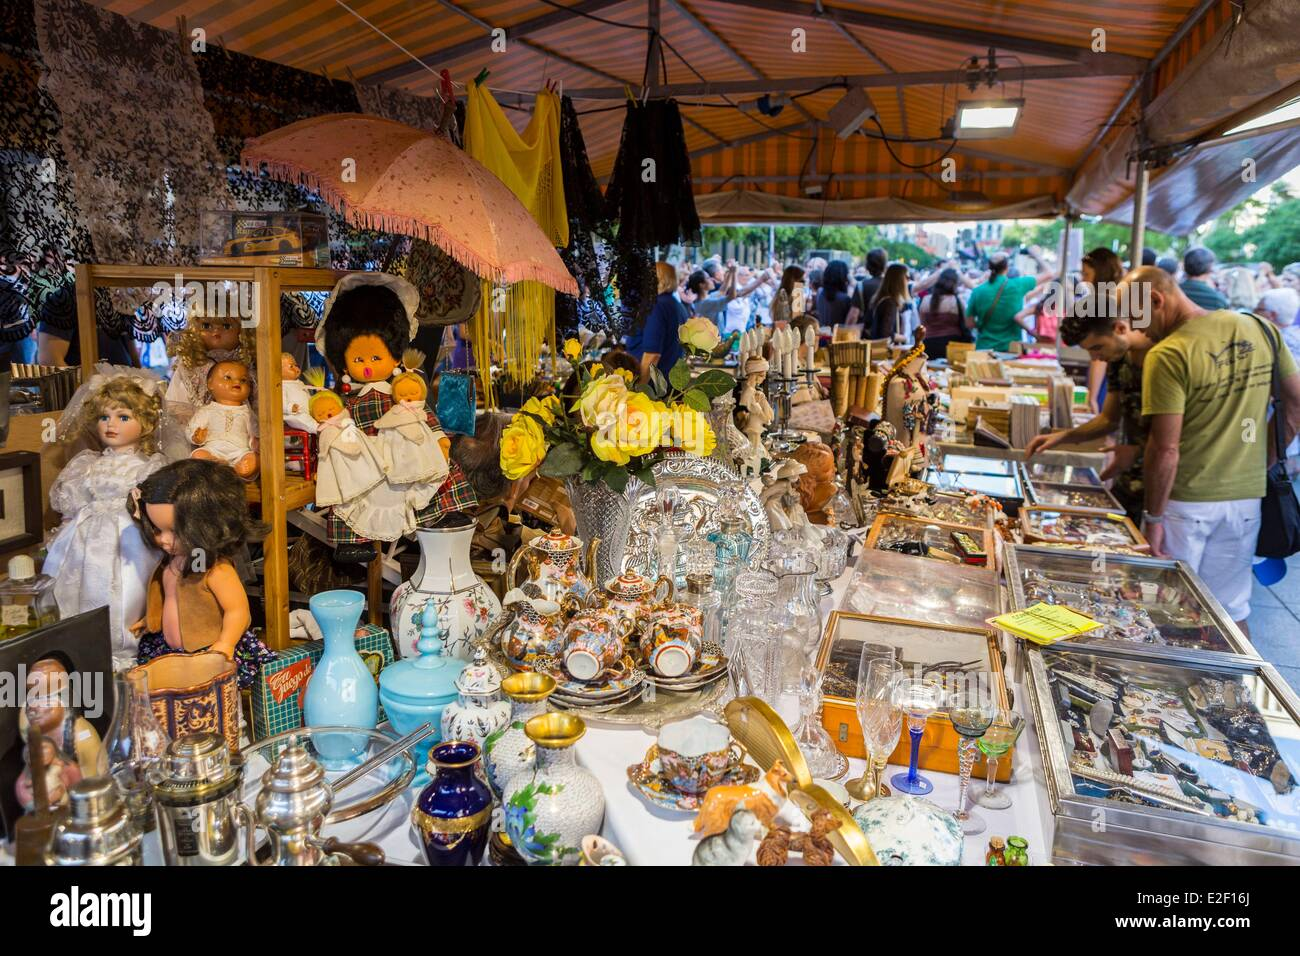 Spain, Catalonia, Barcelona, Barri Gotic, antiques market to the Santa Eulalia Cathedral - Stock Image